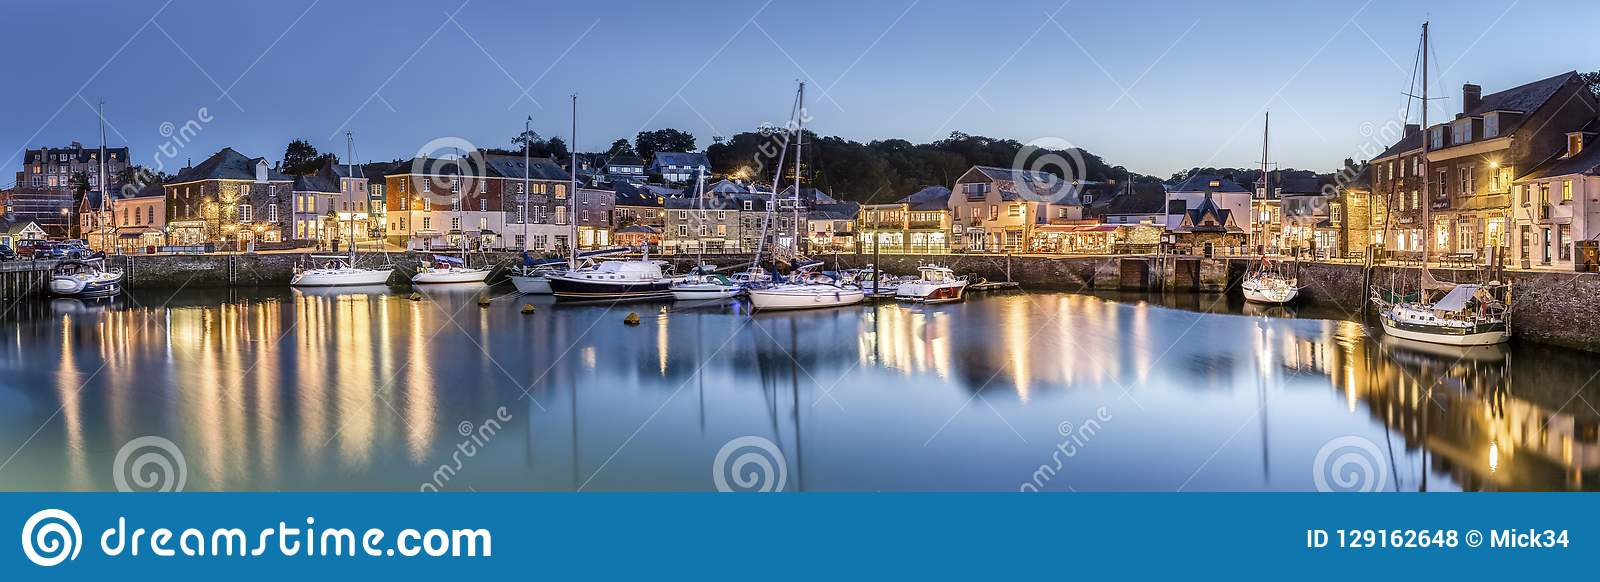 Padstow Harbour at Dusk, Cornwall